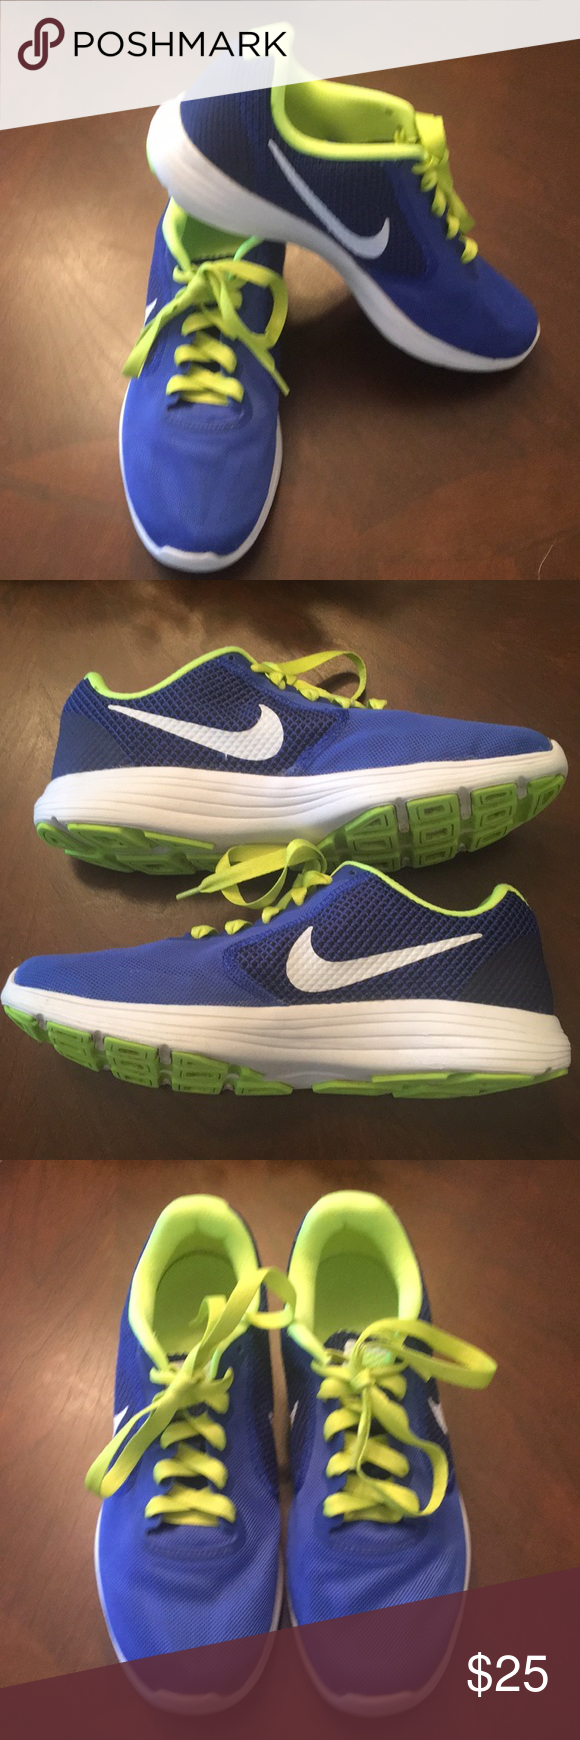 blue nikes with yellow swoosh